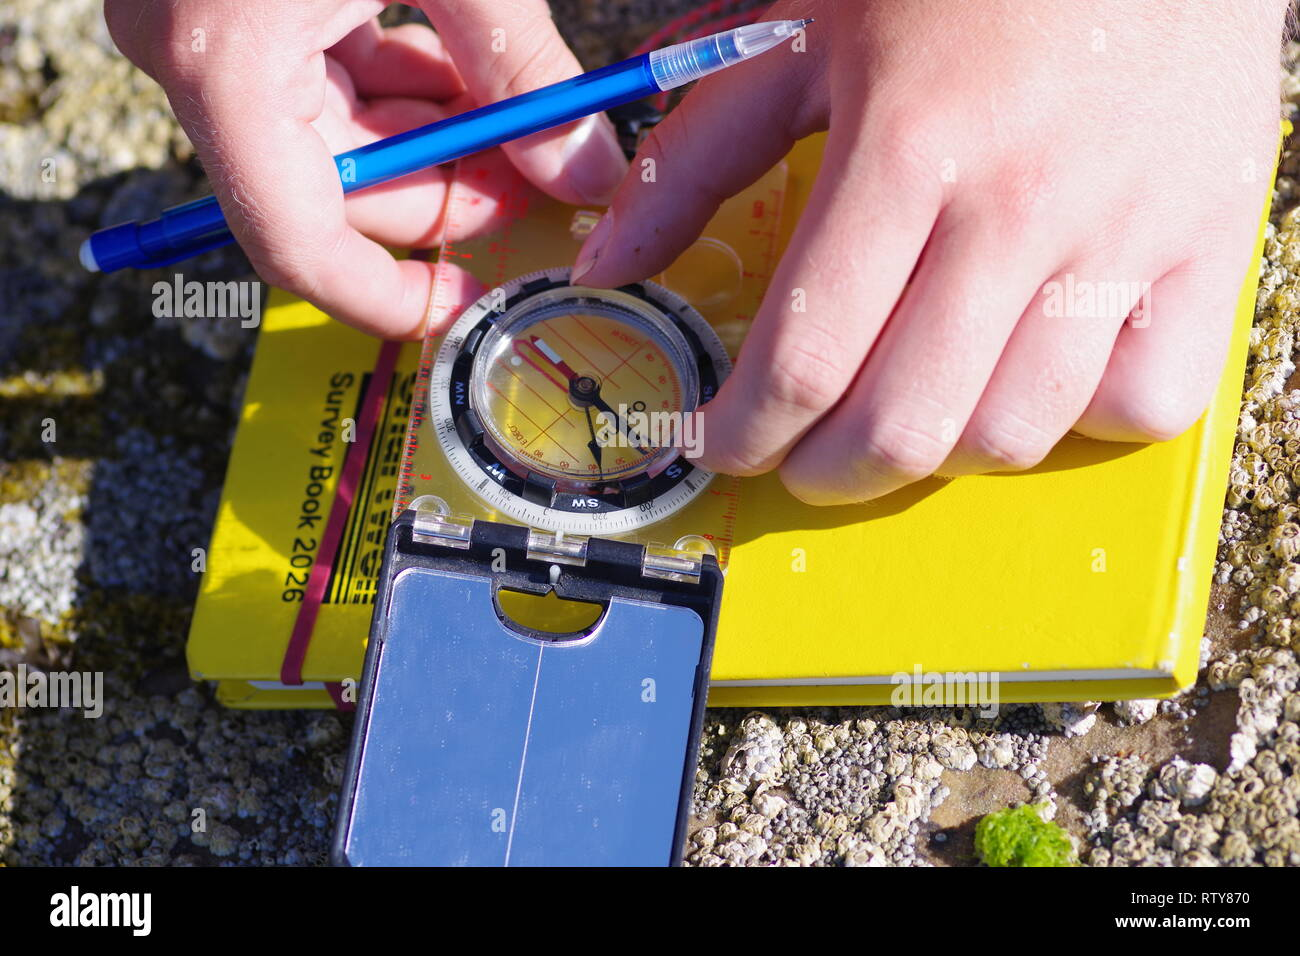 Clinometer Stock Photos & Clinometer Stock Images - Alamy